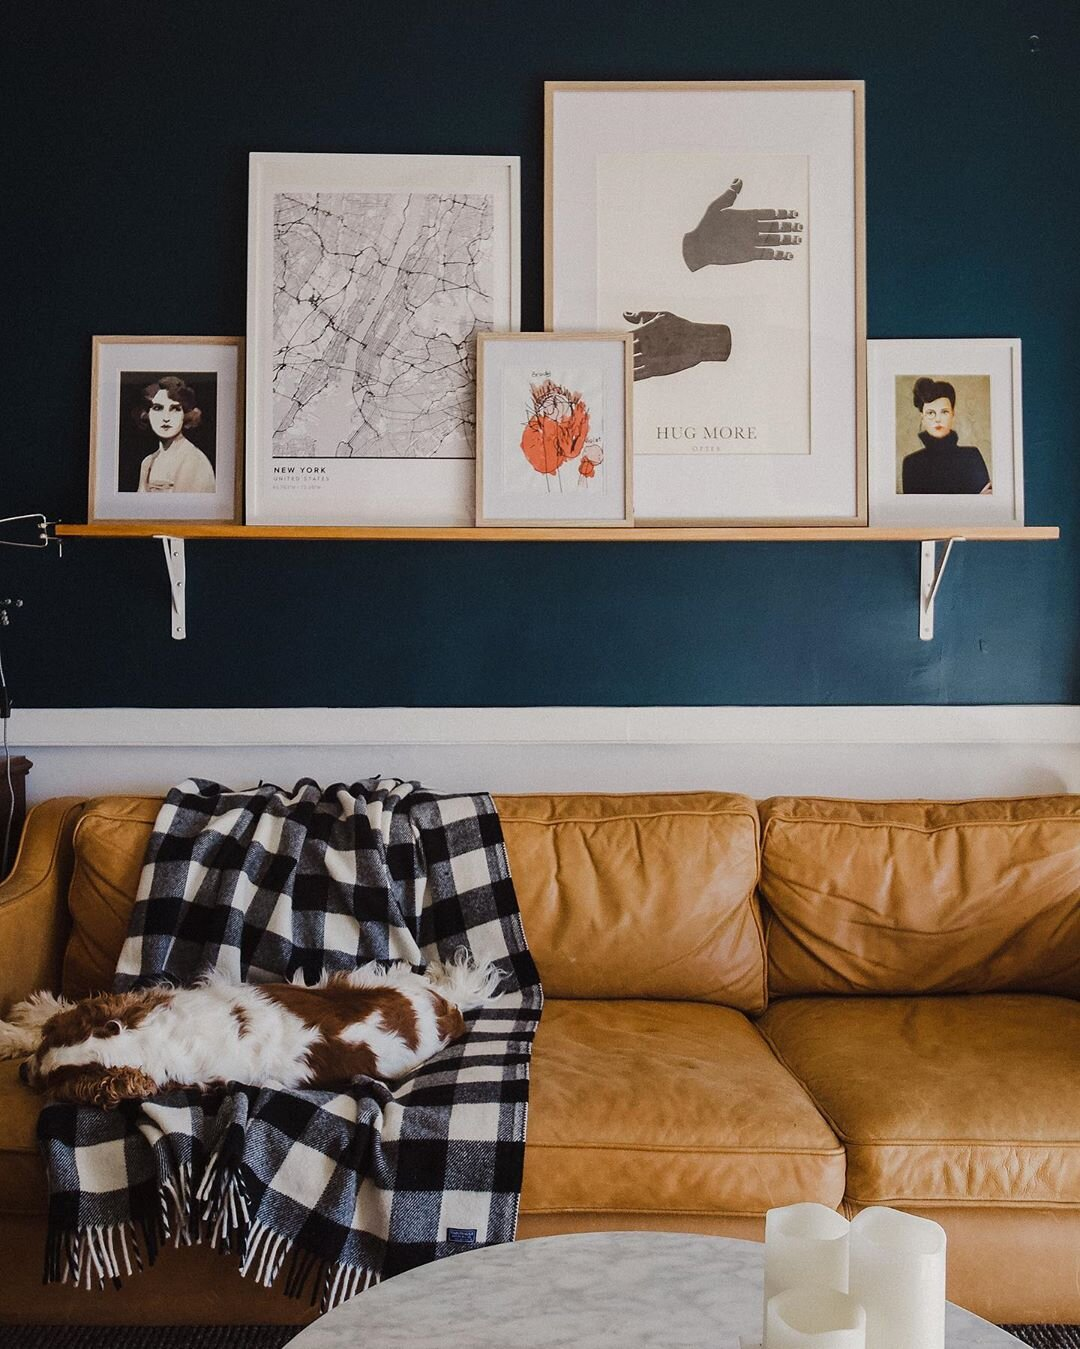 Pip's dog feeling quite at home on her couch. Source:  @theinsidecollective